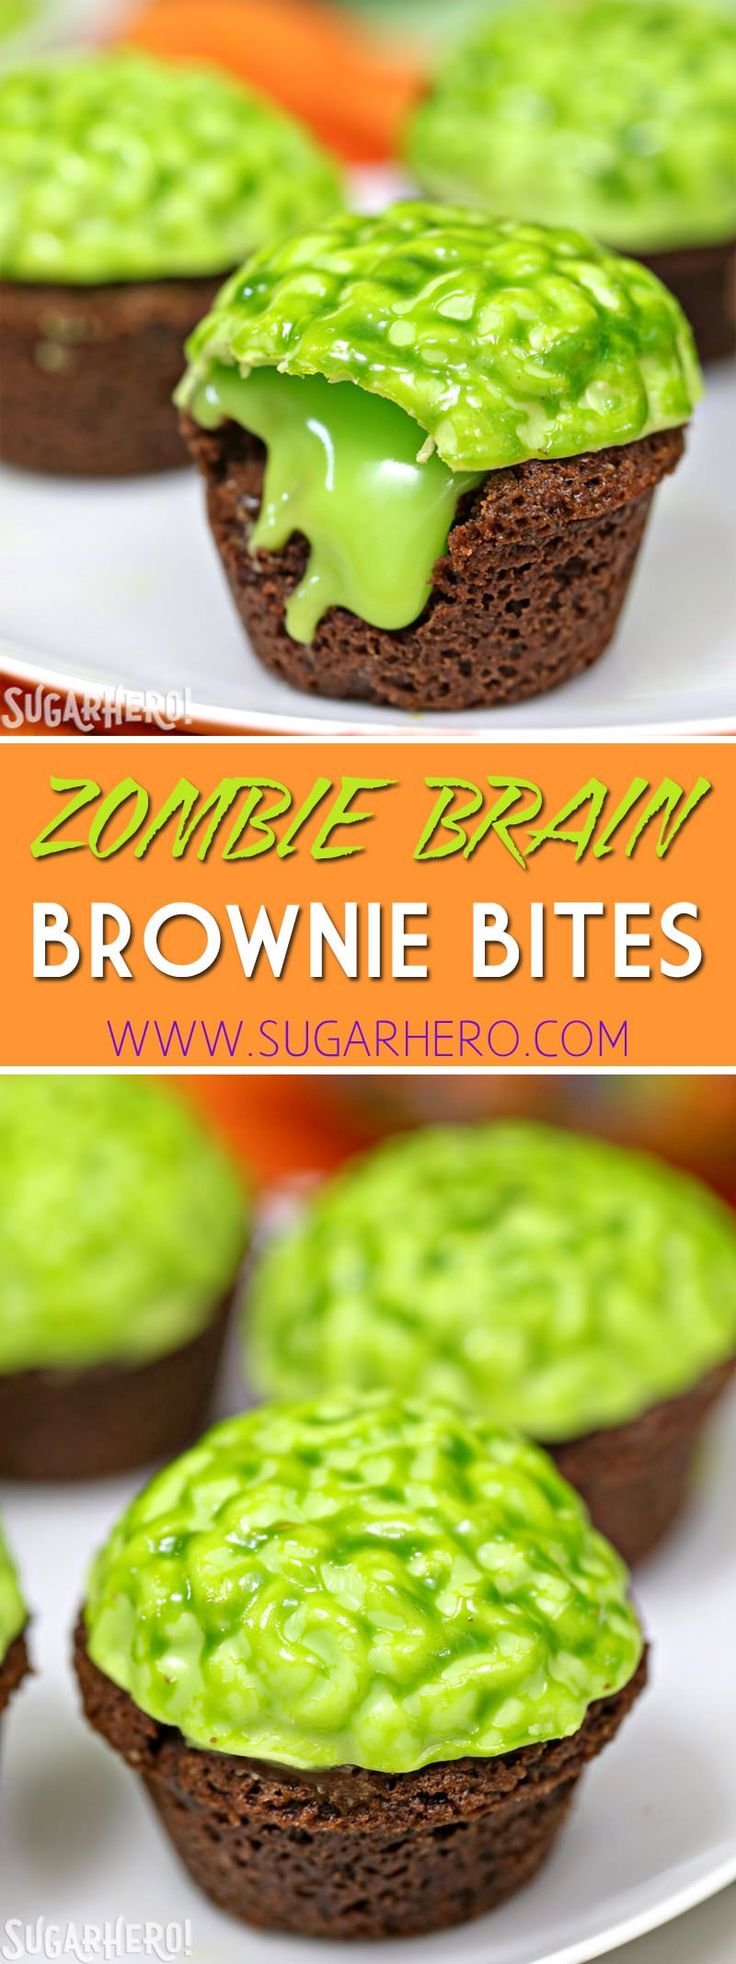 "Zombie Brain Brownie Bites are bite-sized brownies, topped with a bright green zombie brain that oozes green chocolate ""slime!"" 